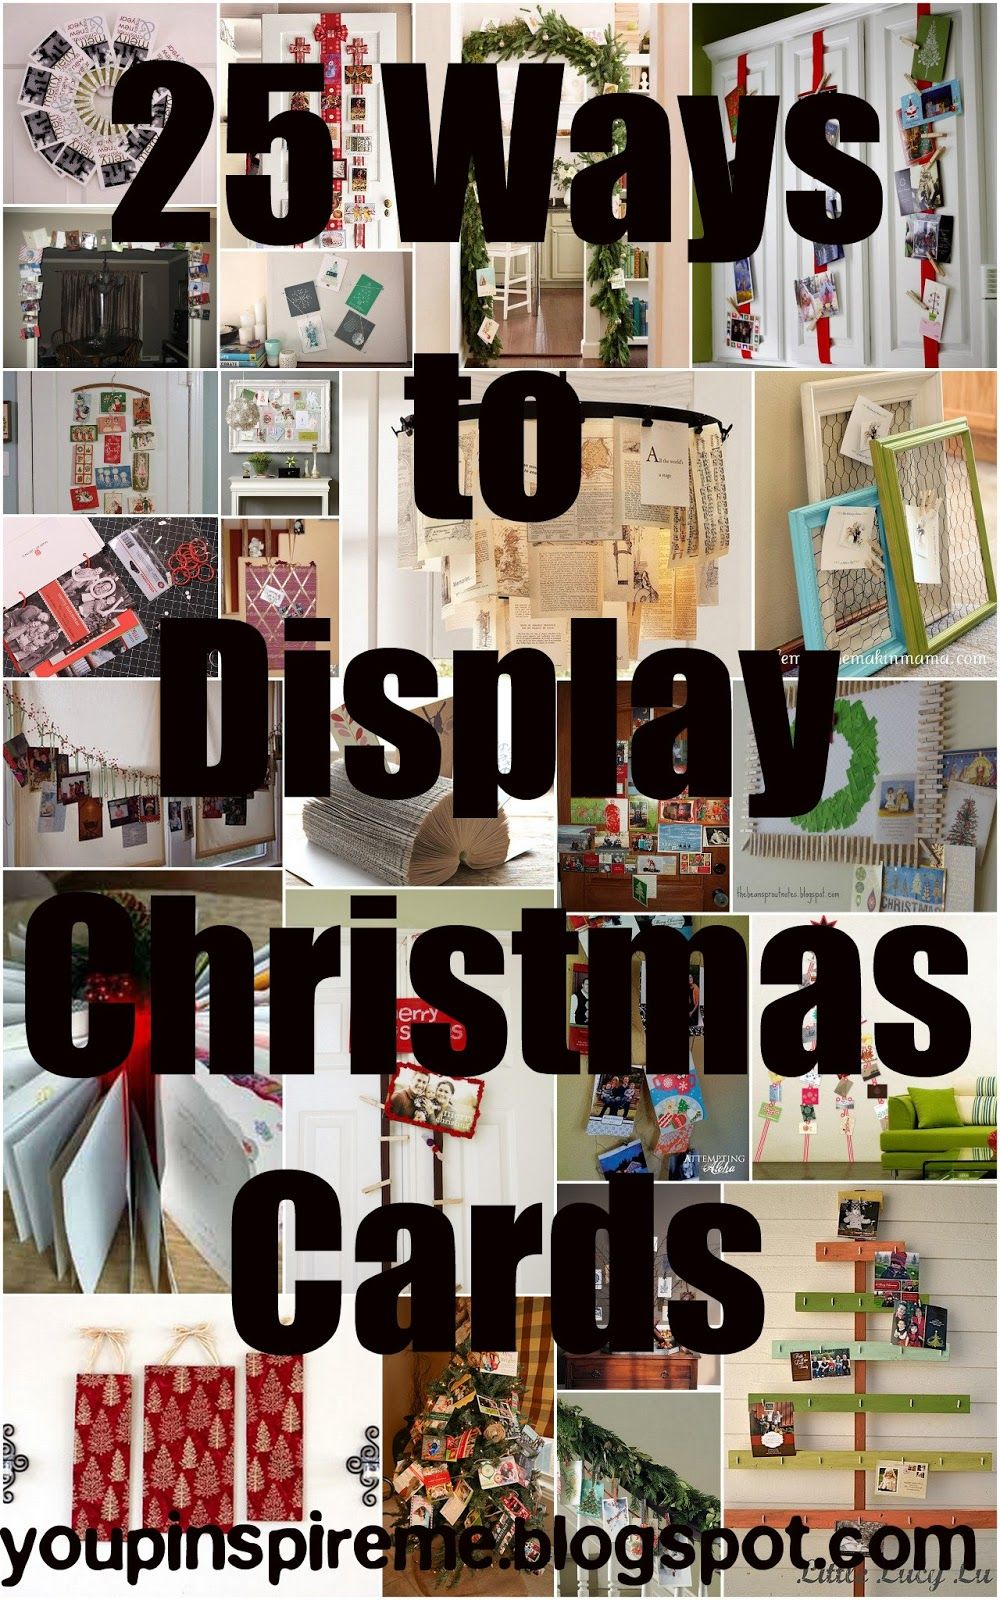 Merveilleux 25 Ways To Display Christmas Cards   One Stop Shopping For Ideas On How To  Display